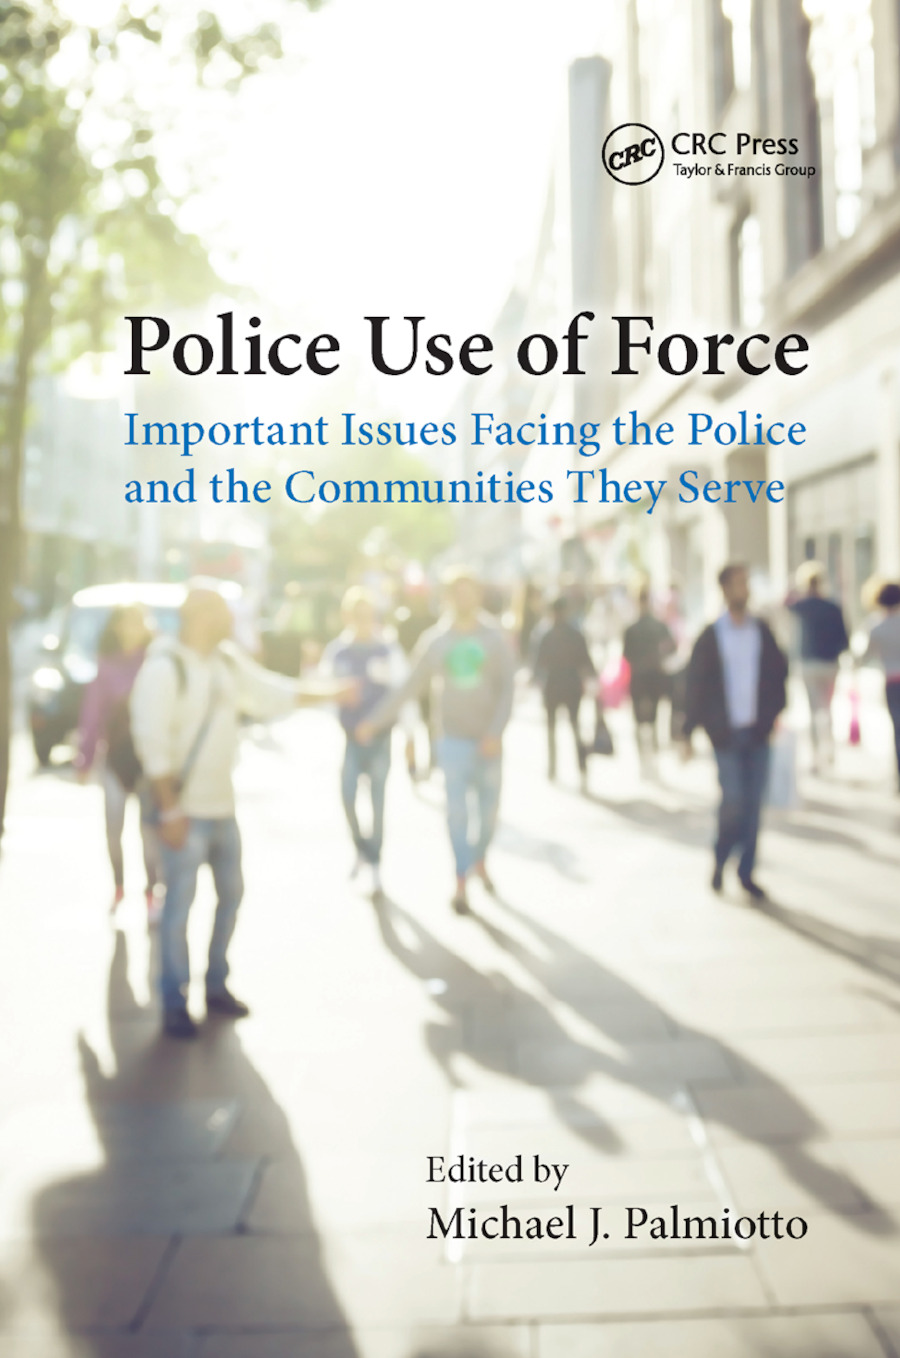 Police Use of Force: Important Issues Facing the Police and the Communities They Serve book cover